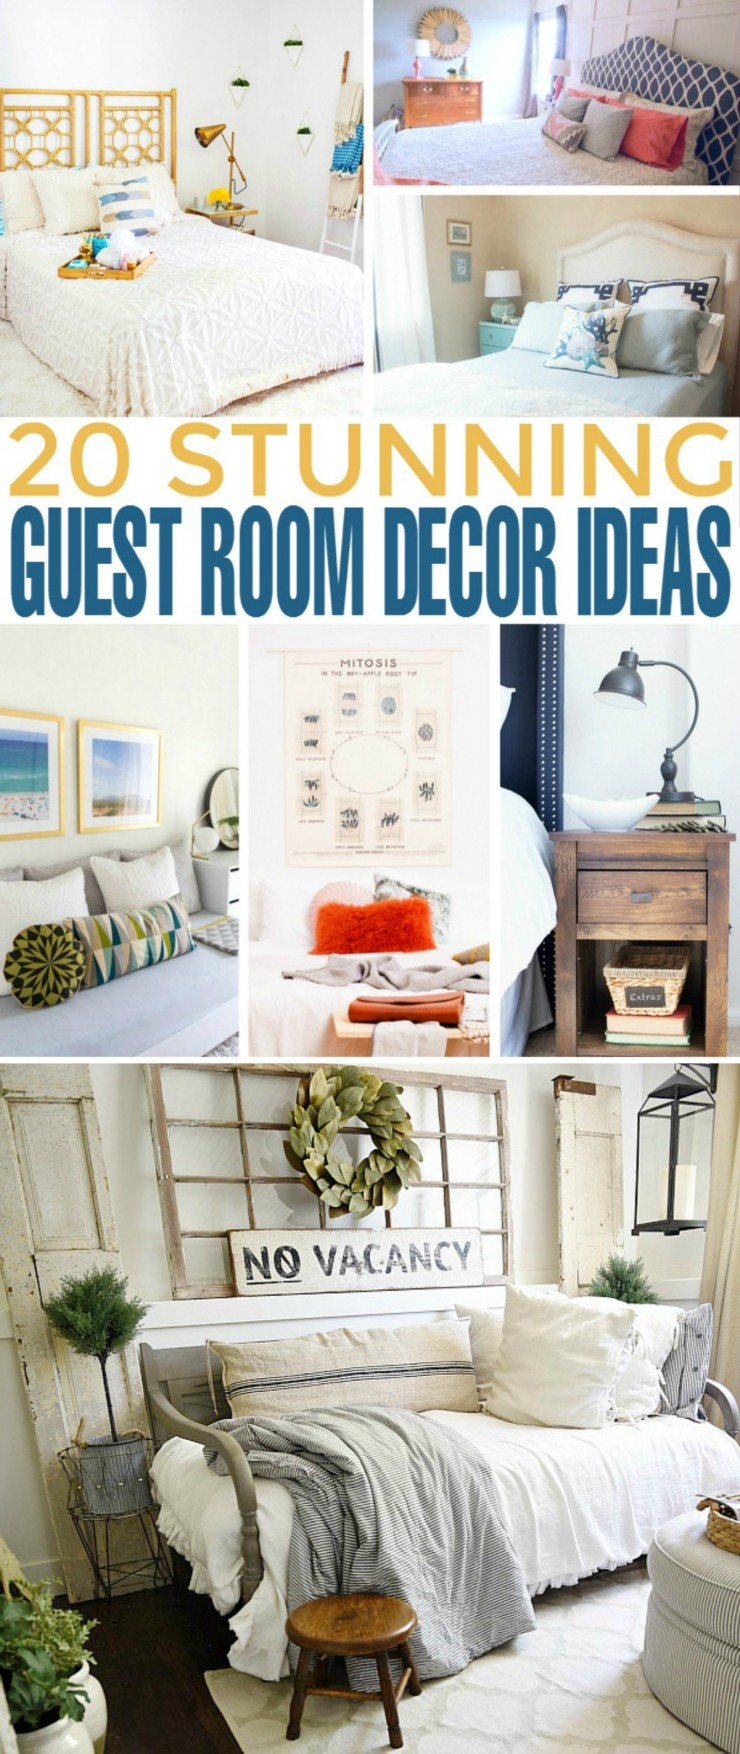 If you ever considered redecorating your guest room, I have some inspirational posts to get you started. These wonderful bloggers have come up with creative guest room decor ideas which are also budget-friendly. So as long as you're willing to put in some effort you will end up having an awe-inspiring guest room in no time!